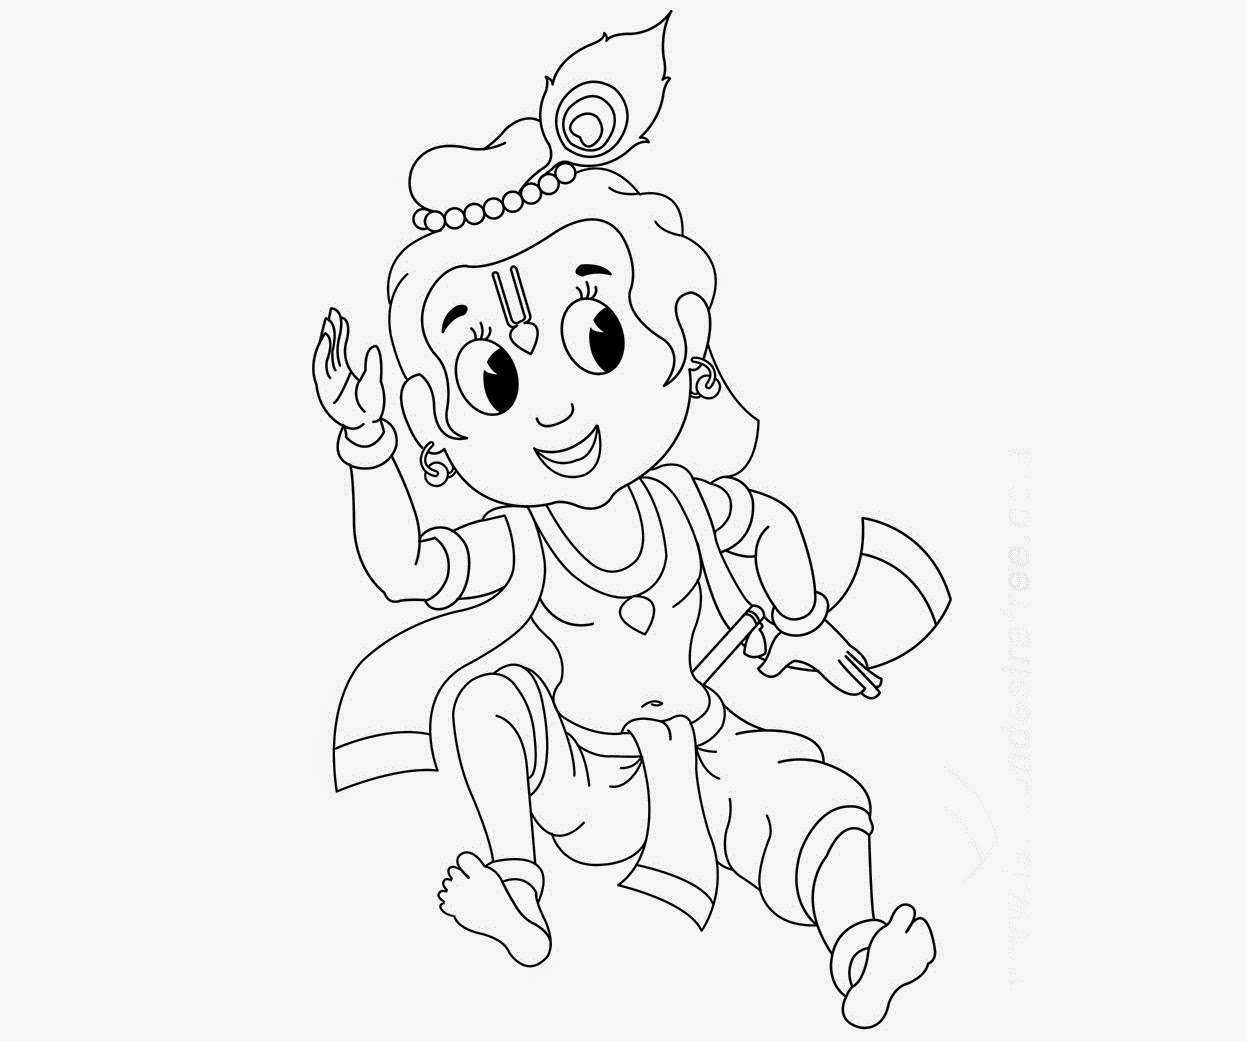 1247x1041 Colour Drawing Free Wallpaper Little Krishna Coloring Drawing